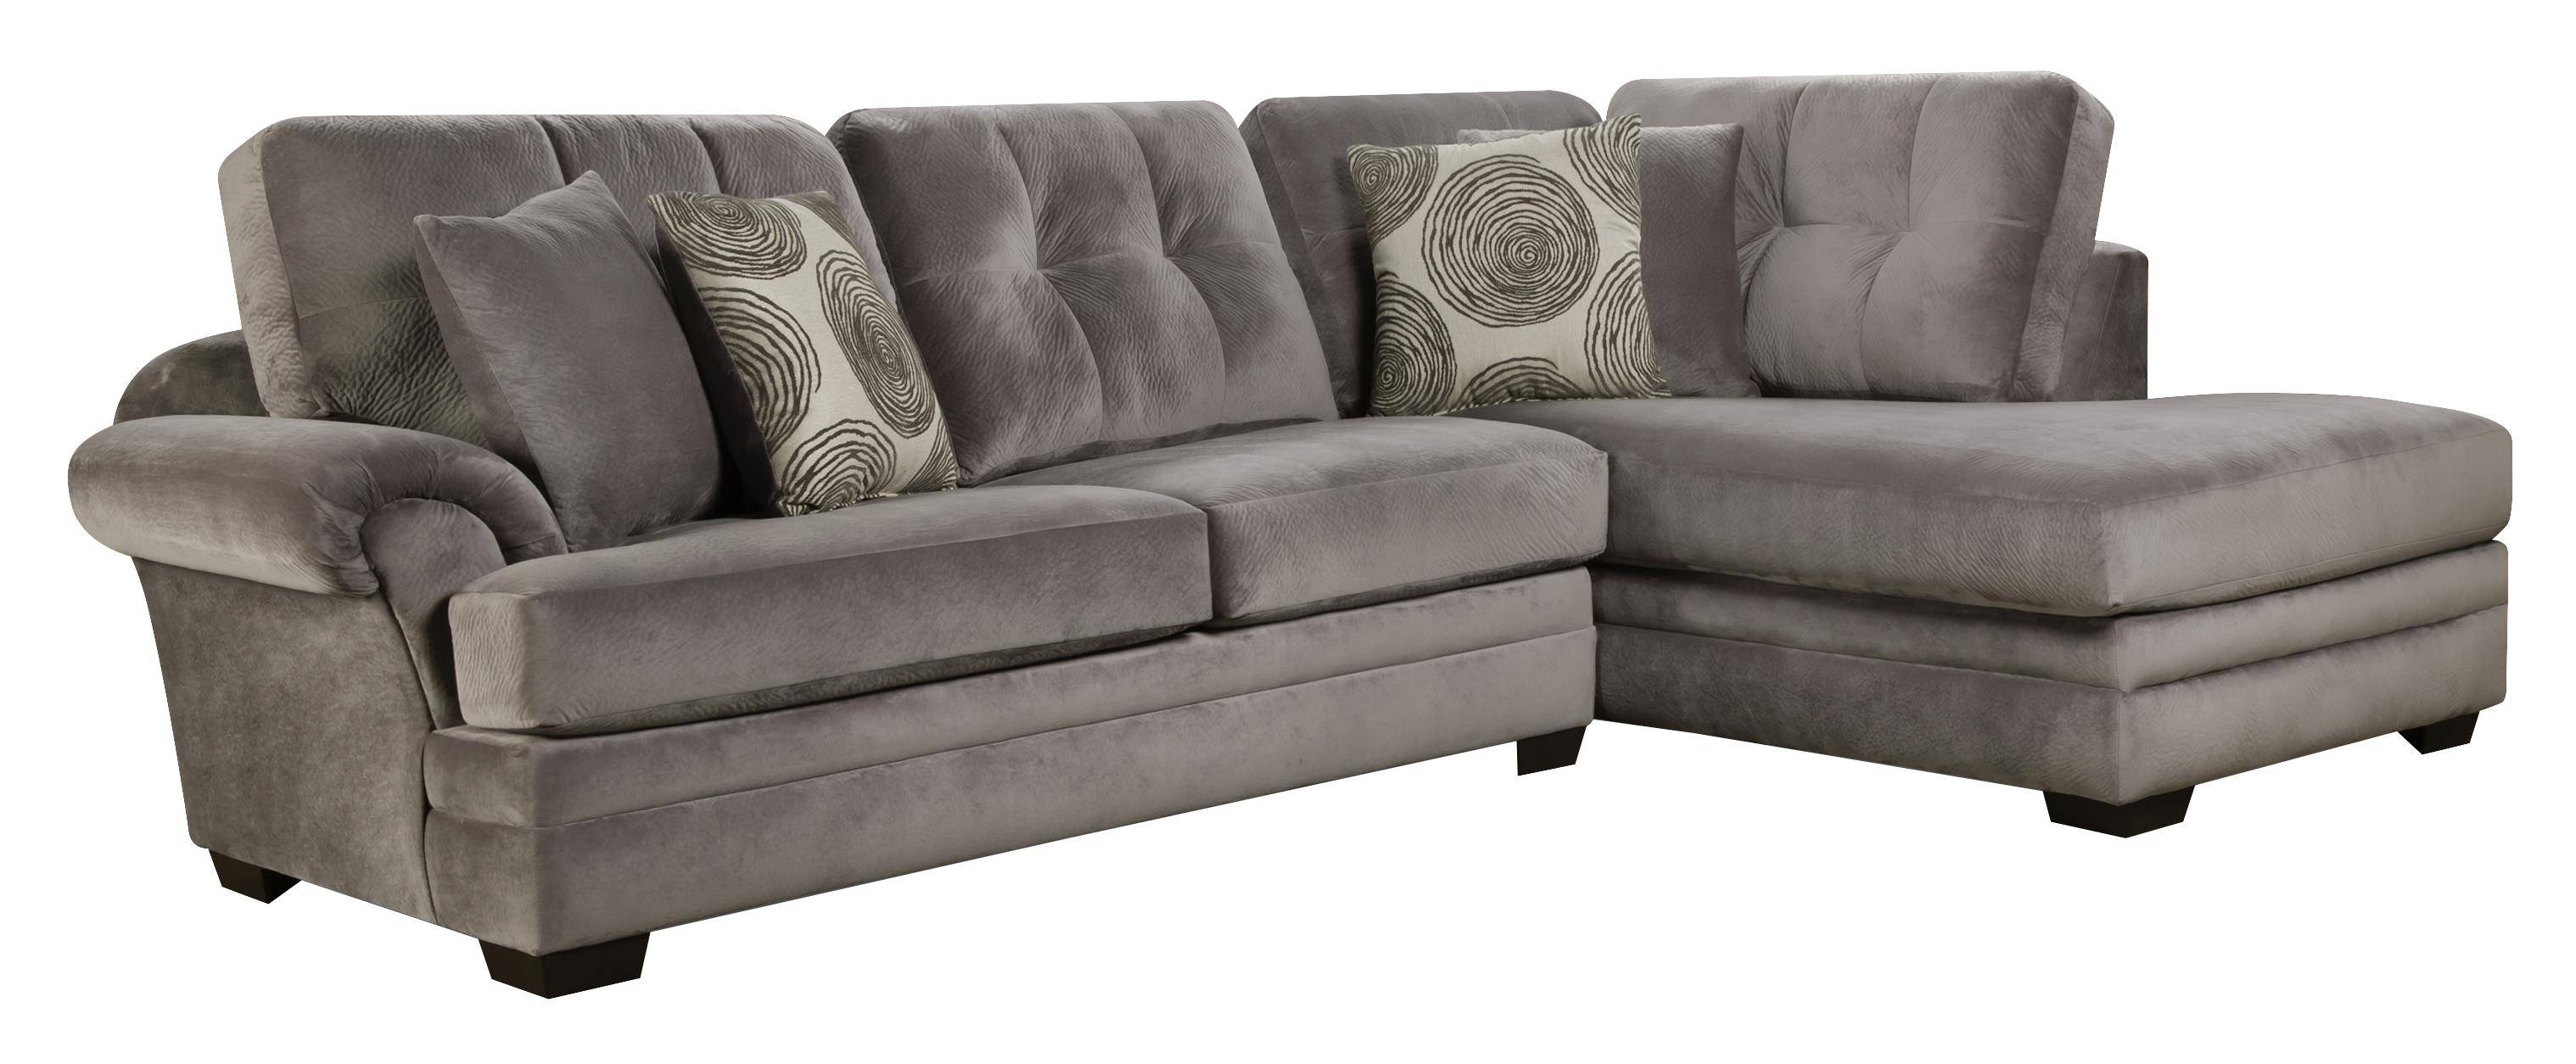 Small Sectional Sofa With Chaise. Simple 3 Piece Leather Sectional with Condo Sectional Sofas (Image 24 of 30)